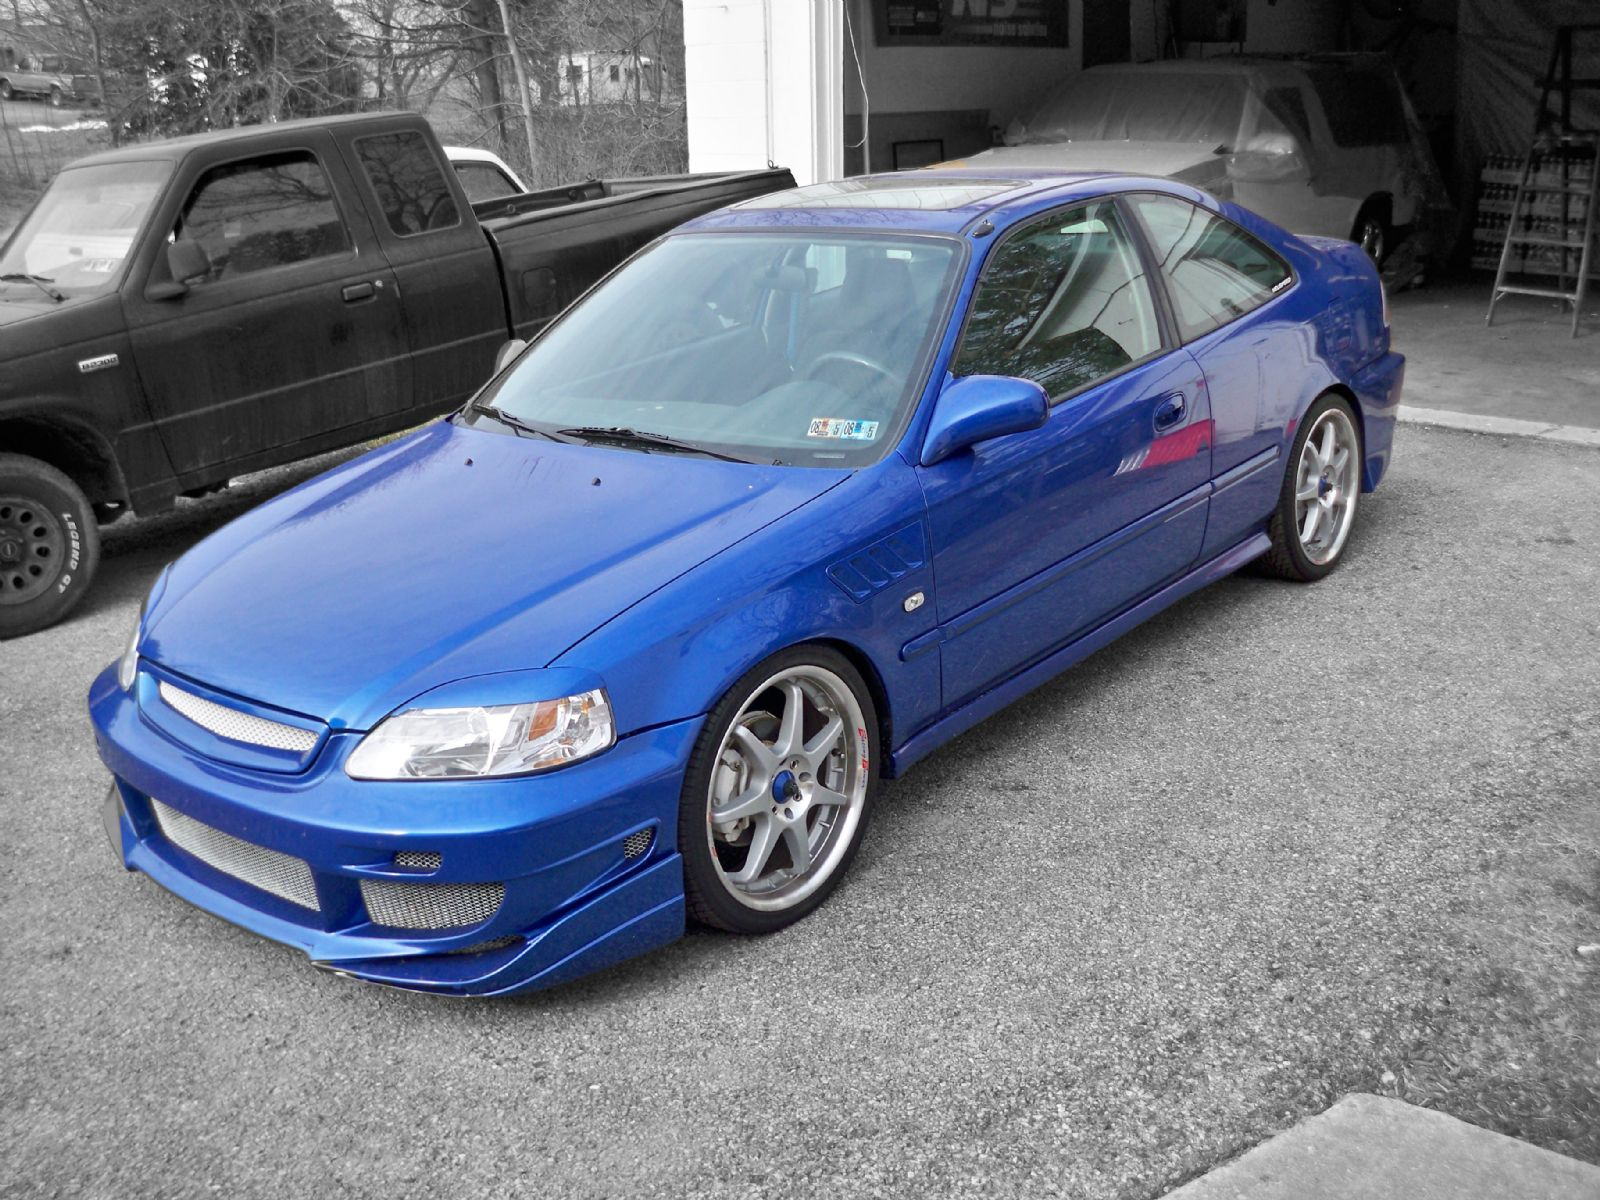 1999 honda civic si for sale lancaster pennsylvania. Black Bedroom Furniture Sets. Home Design Ideas